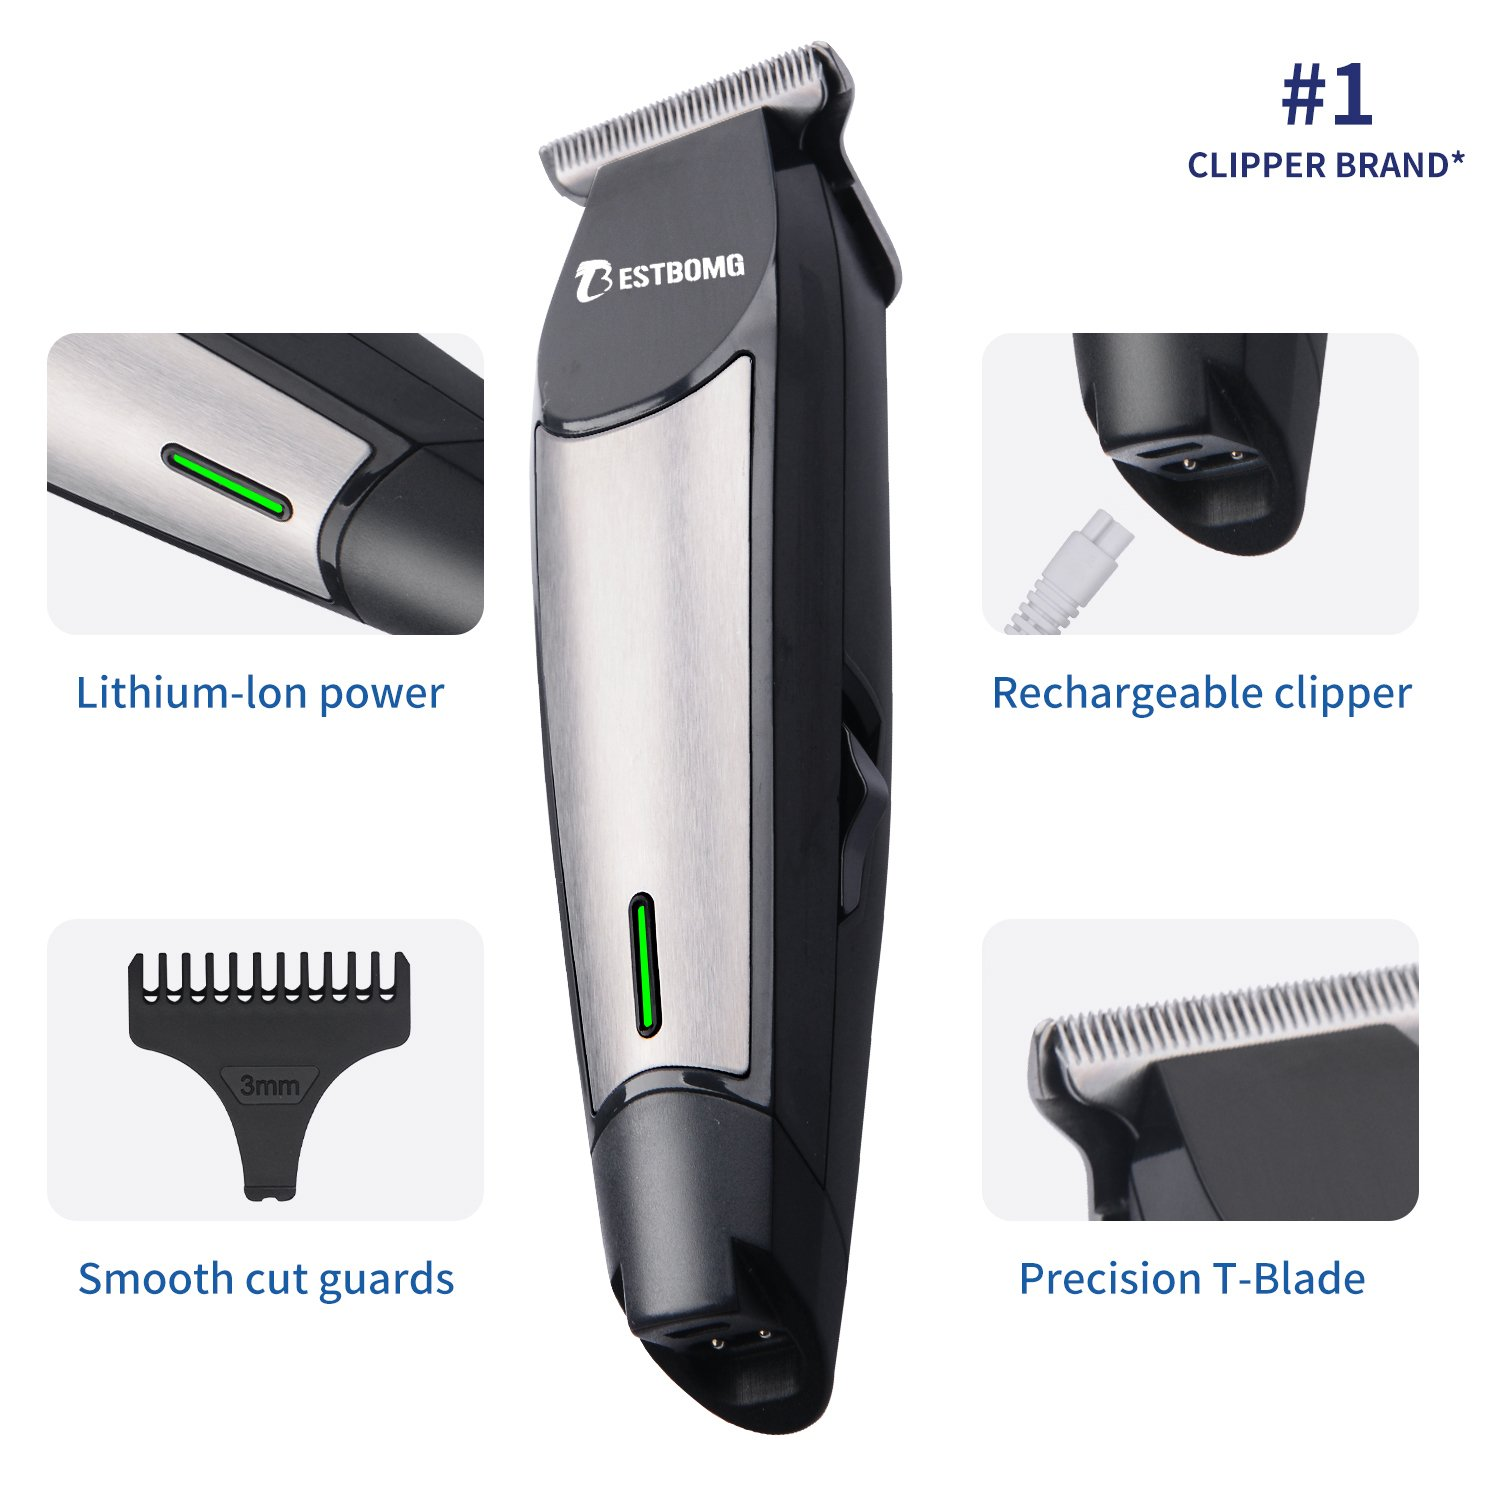 Pro Outliner Hair Bear Trimmer with T-Blade, BESTGOMG Cordless Hair Beard Mustache Body Grooming Kit with USB Rechargeable Lithium Ion and LED Display, for Contouring, Shaving, Sculpting, and Trimming